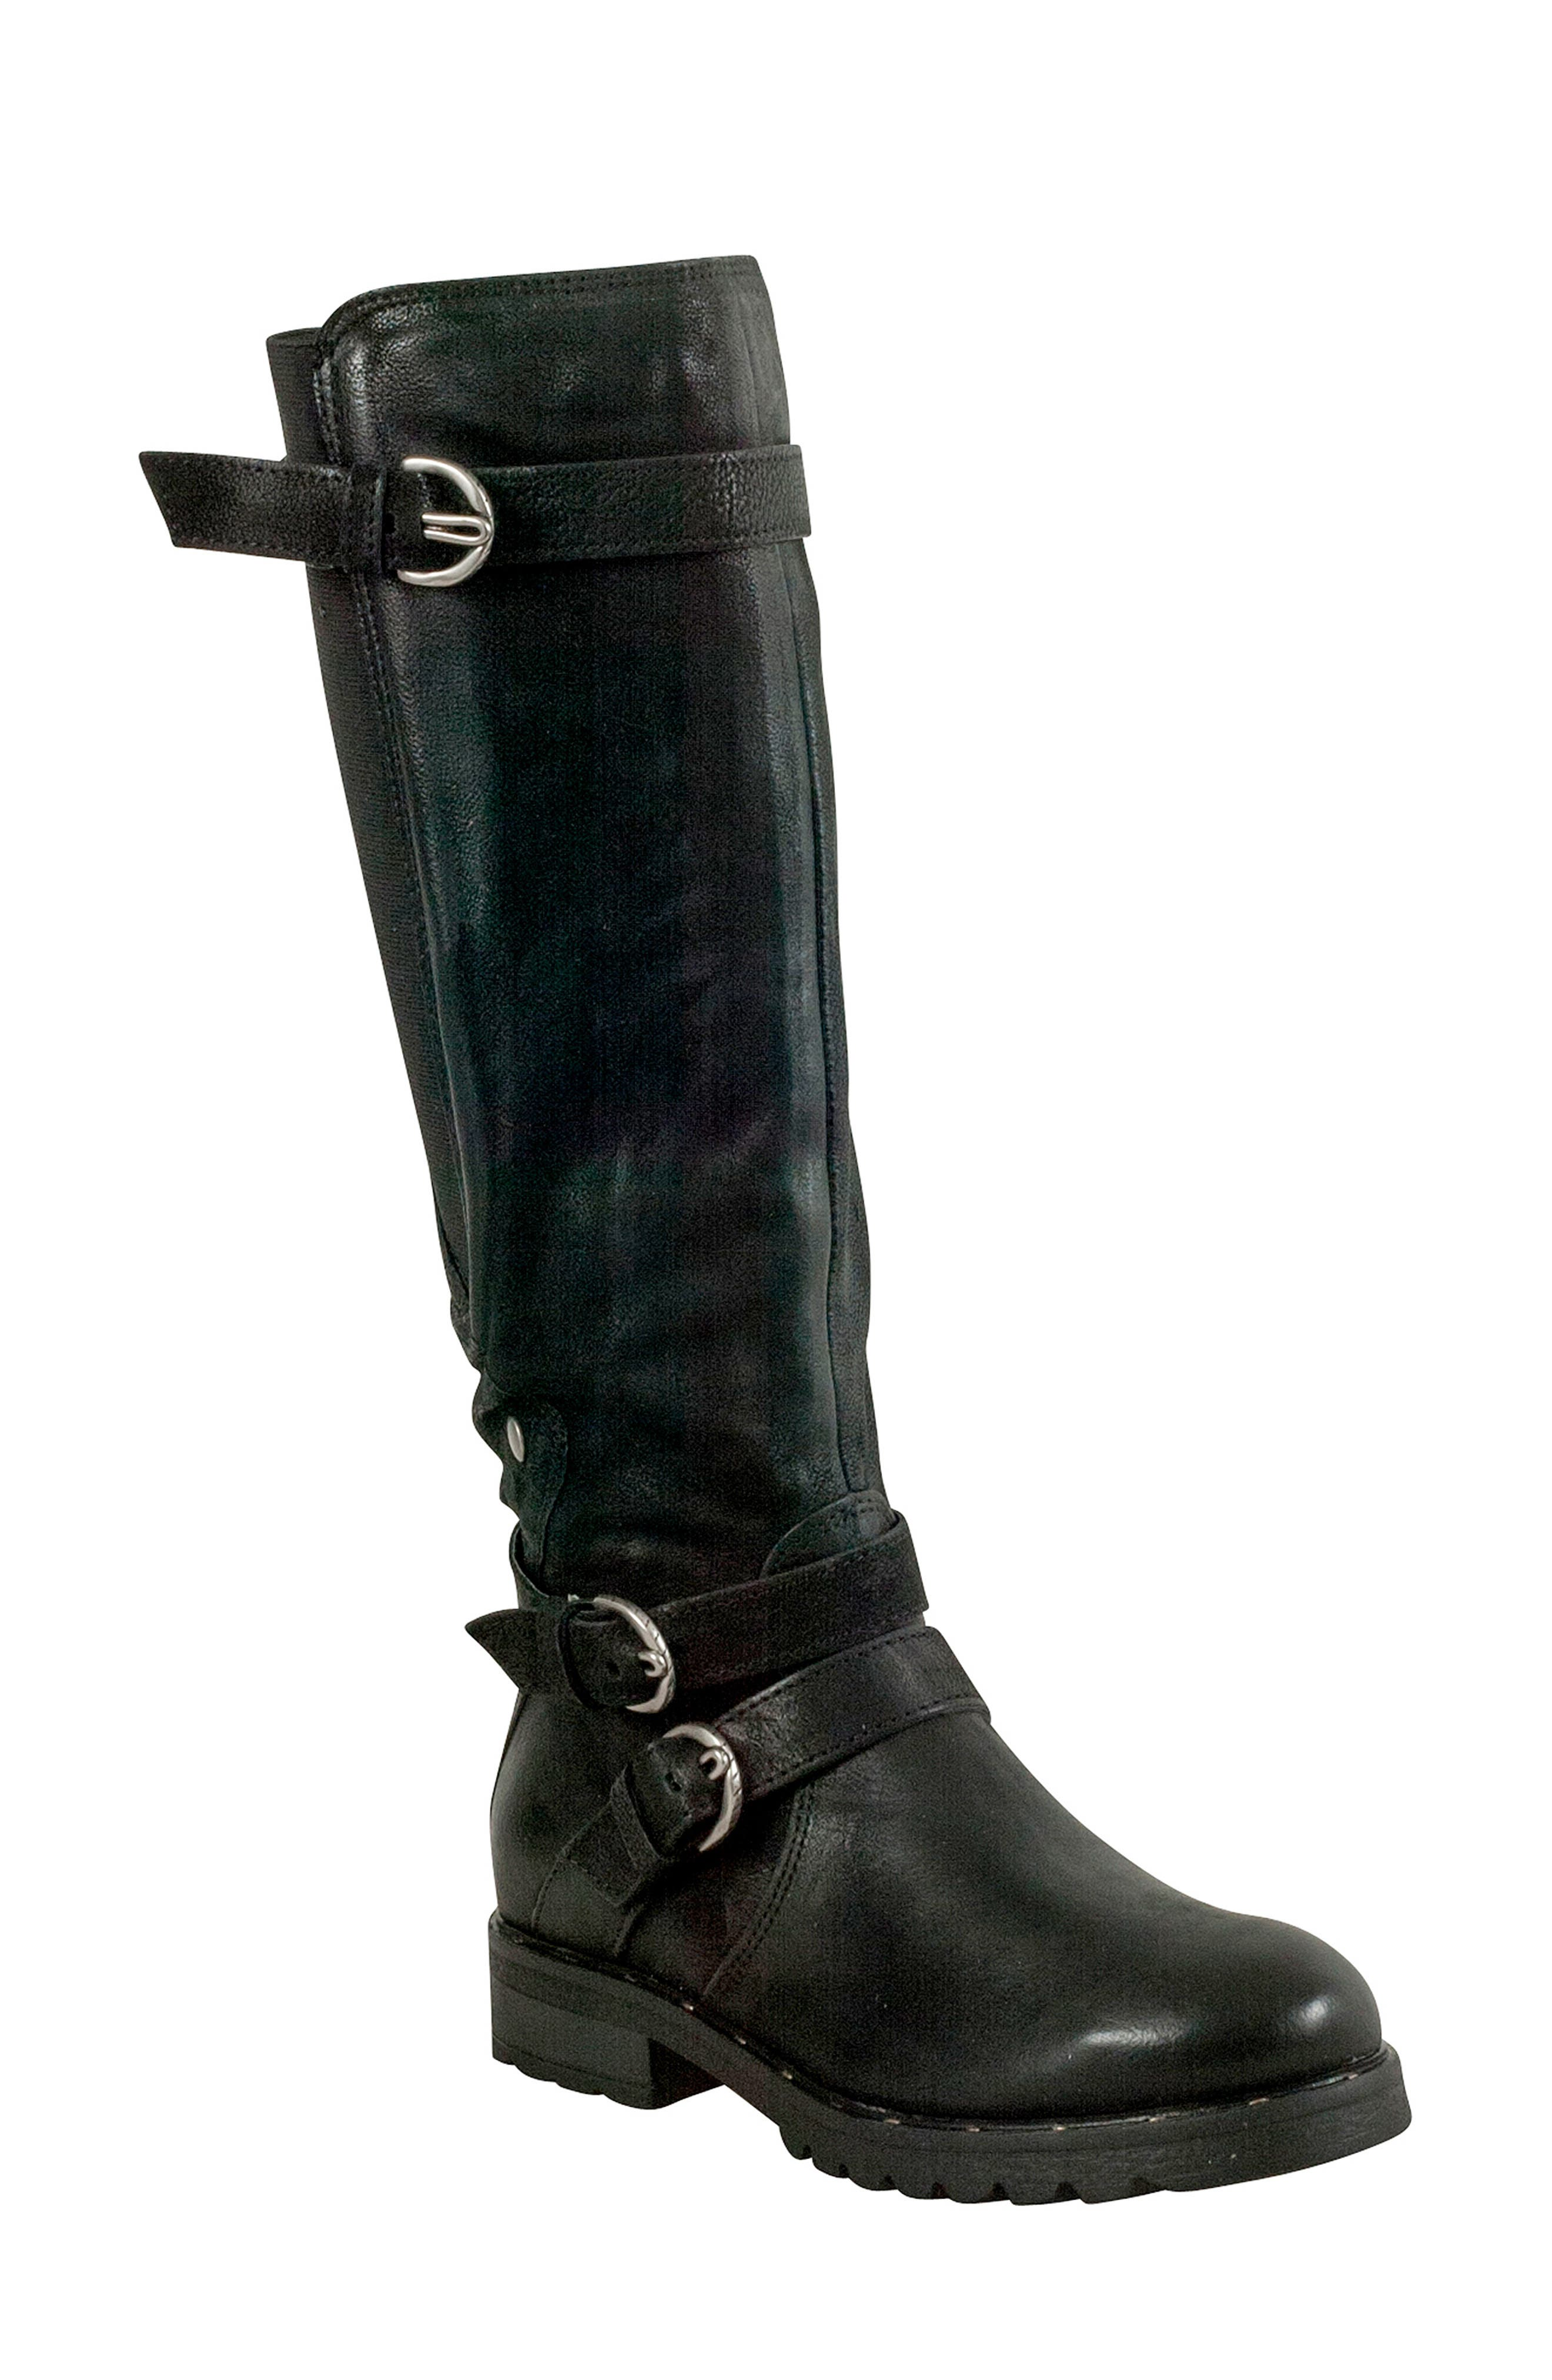 Prim Knee High Boot,                             Main thumbnail 1, color,                             BLACK LEATHER